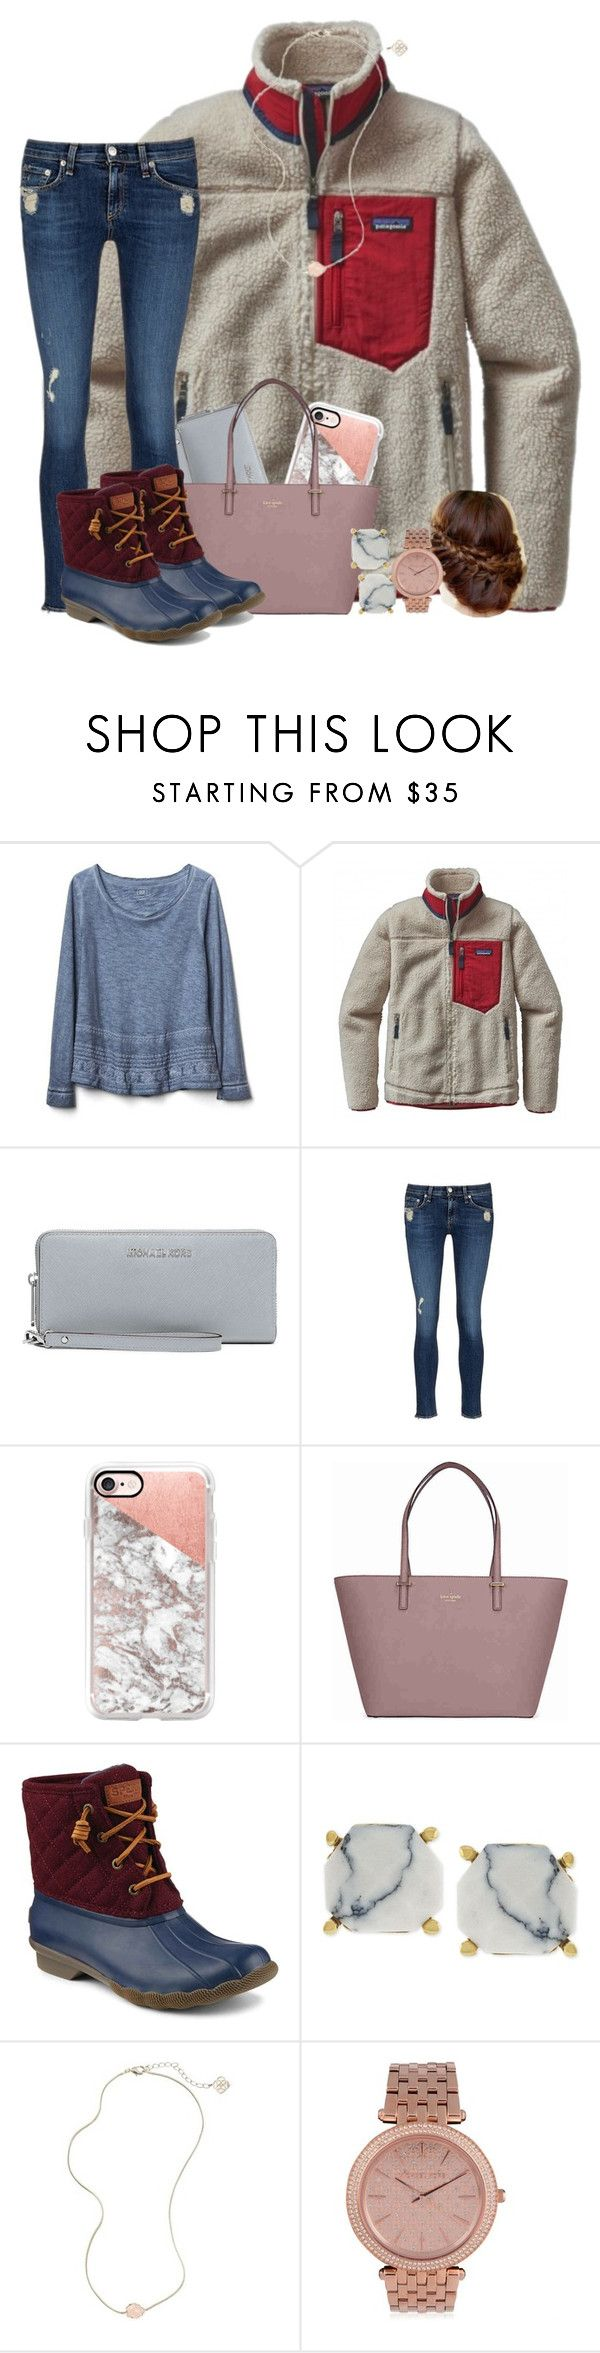 """bowling for kisses "" by wiinter-blue ❤ liked on Polyvore featuring Gap, Patagonia, MICHAEL Michael Kors, rag & bone/JEAN, Casetify, Kate Spade, Sperry, Vince Camuto and Kendra Scott"